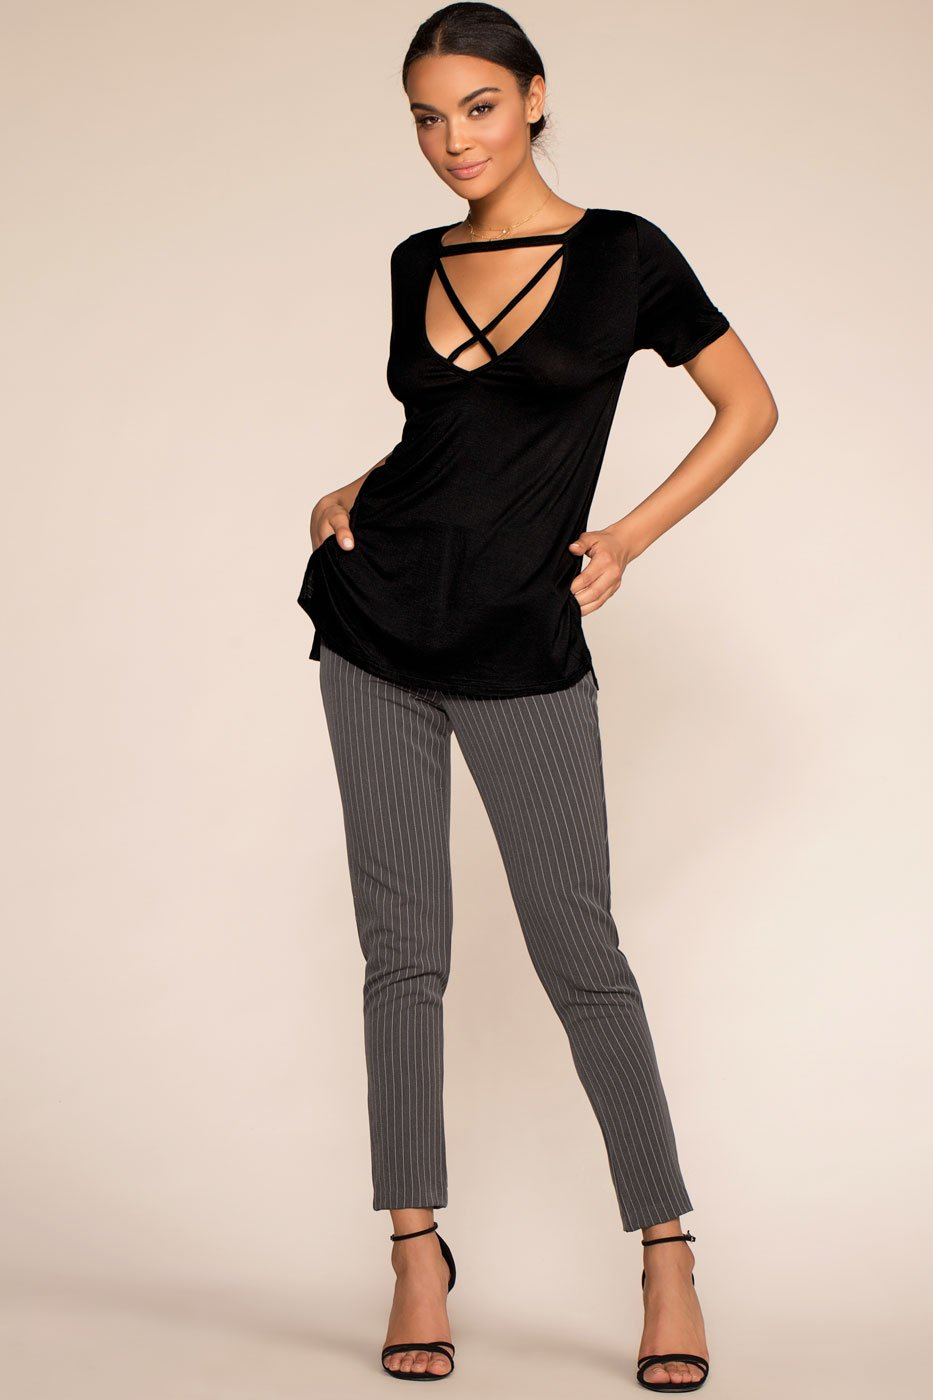 Tops - Keep On Shining Crisscross Oversize Tee - Black